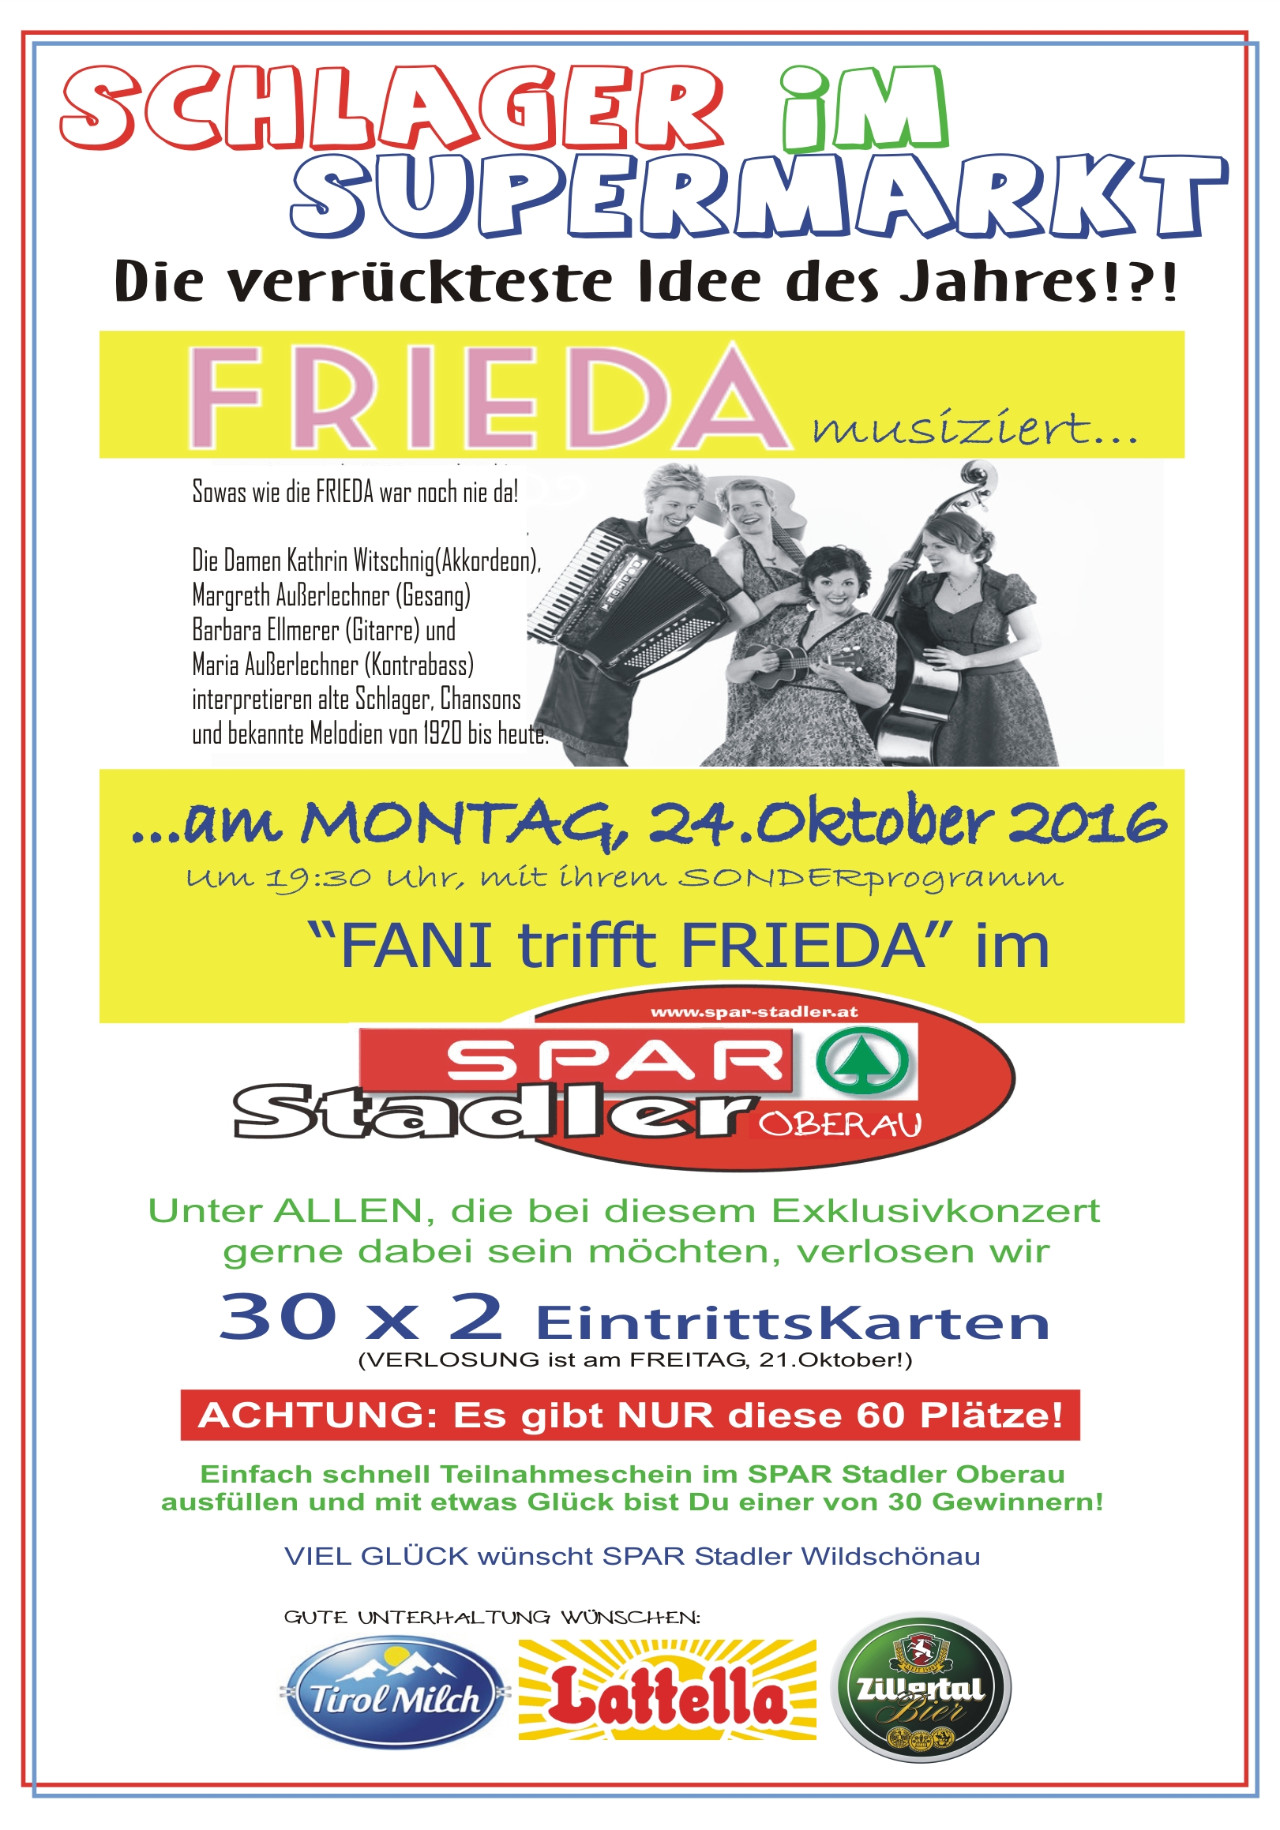 frieda-im-supermarkt-plakat